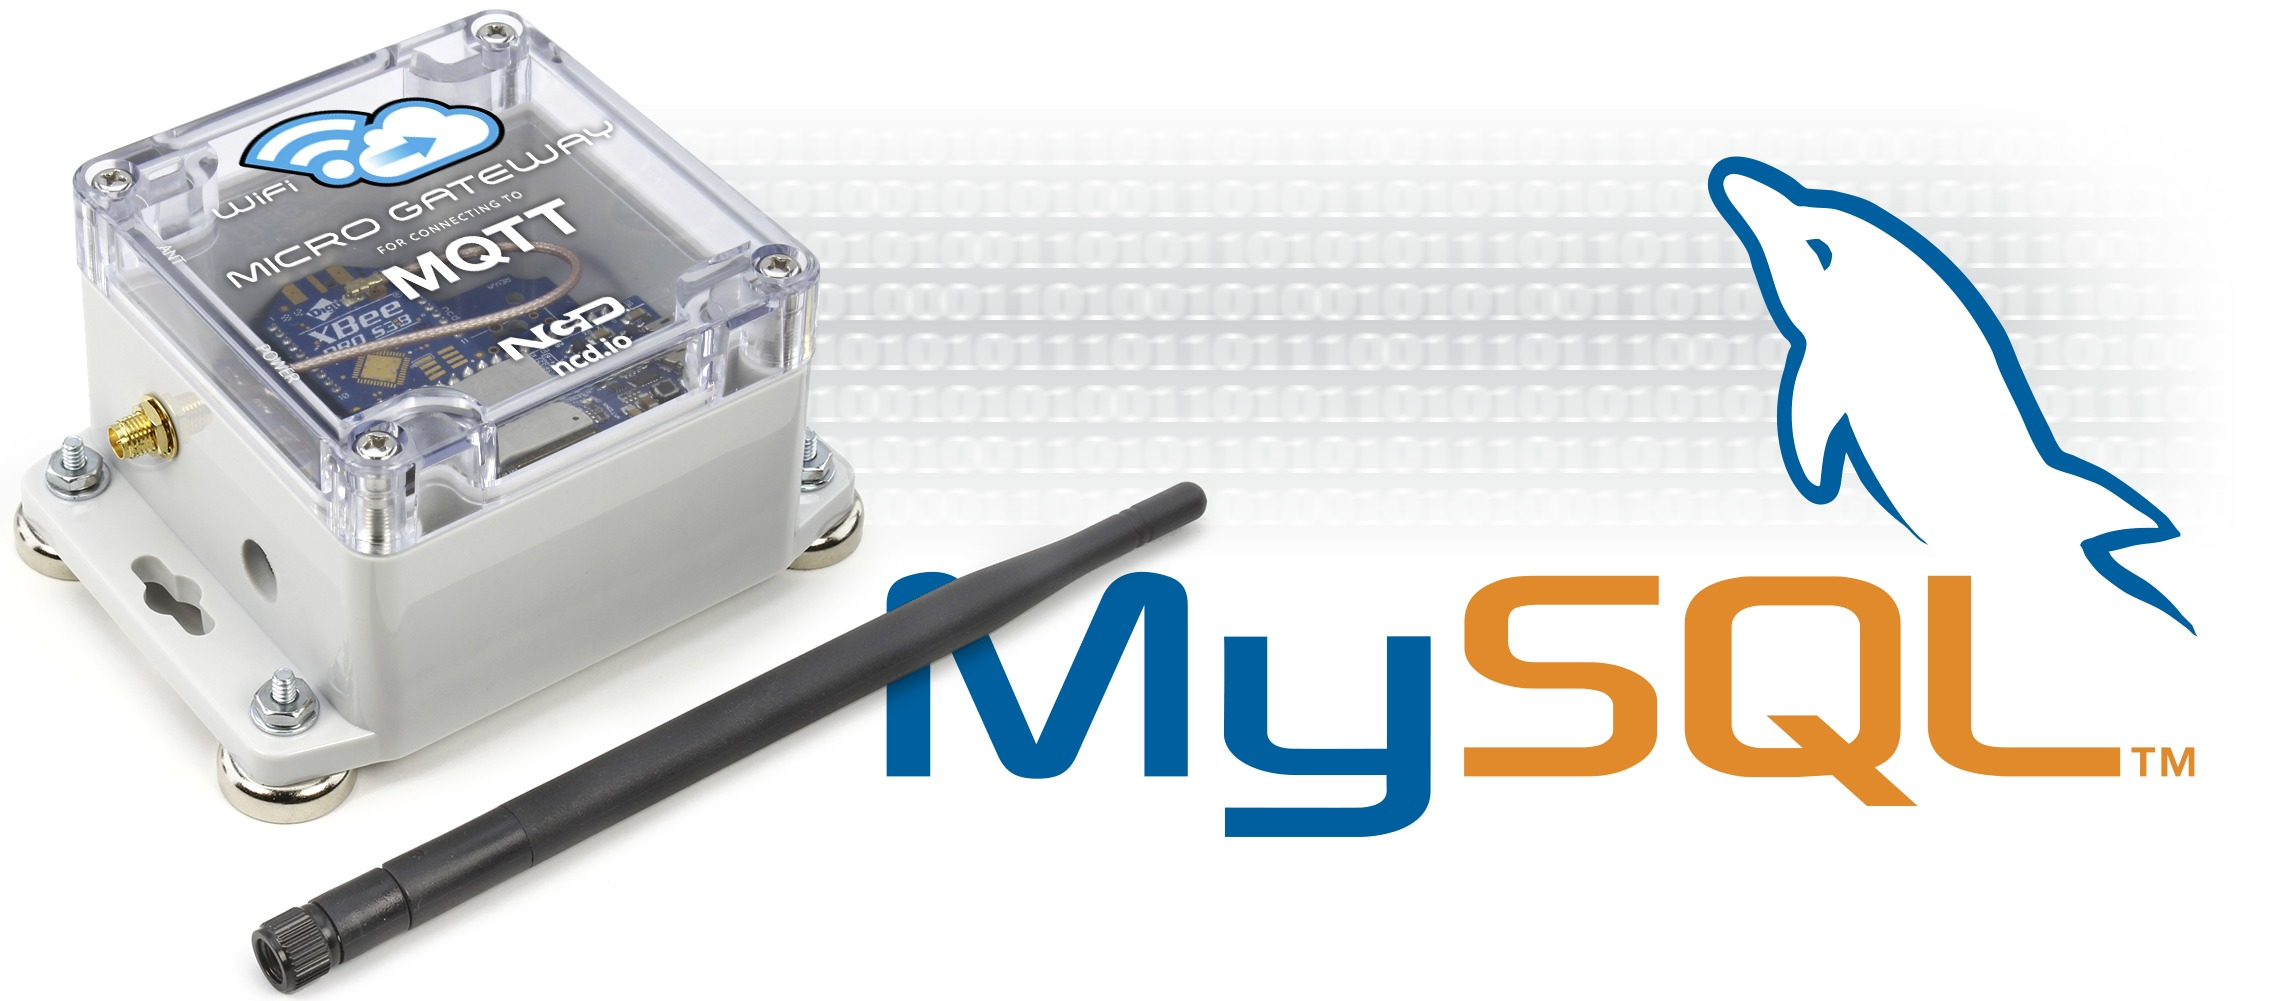 Log MQTT Gateway data to MySQL Database